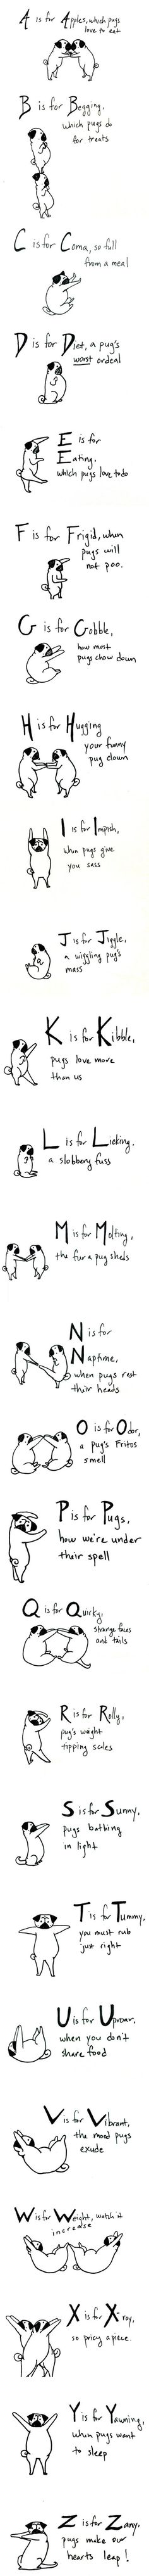 The ABC's of pugs. Repinning for Scott!